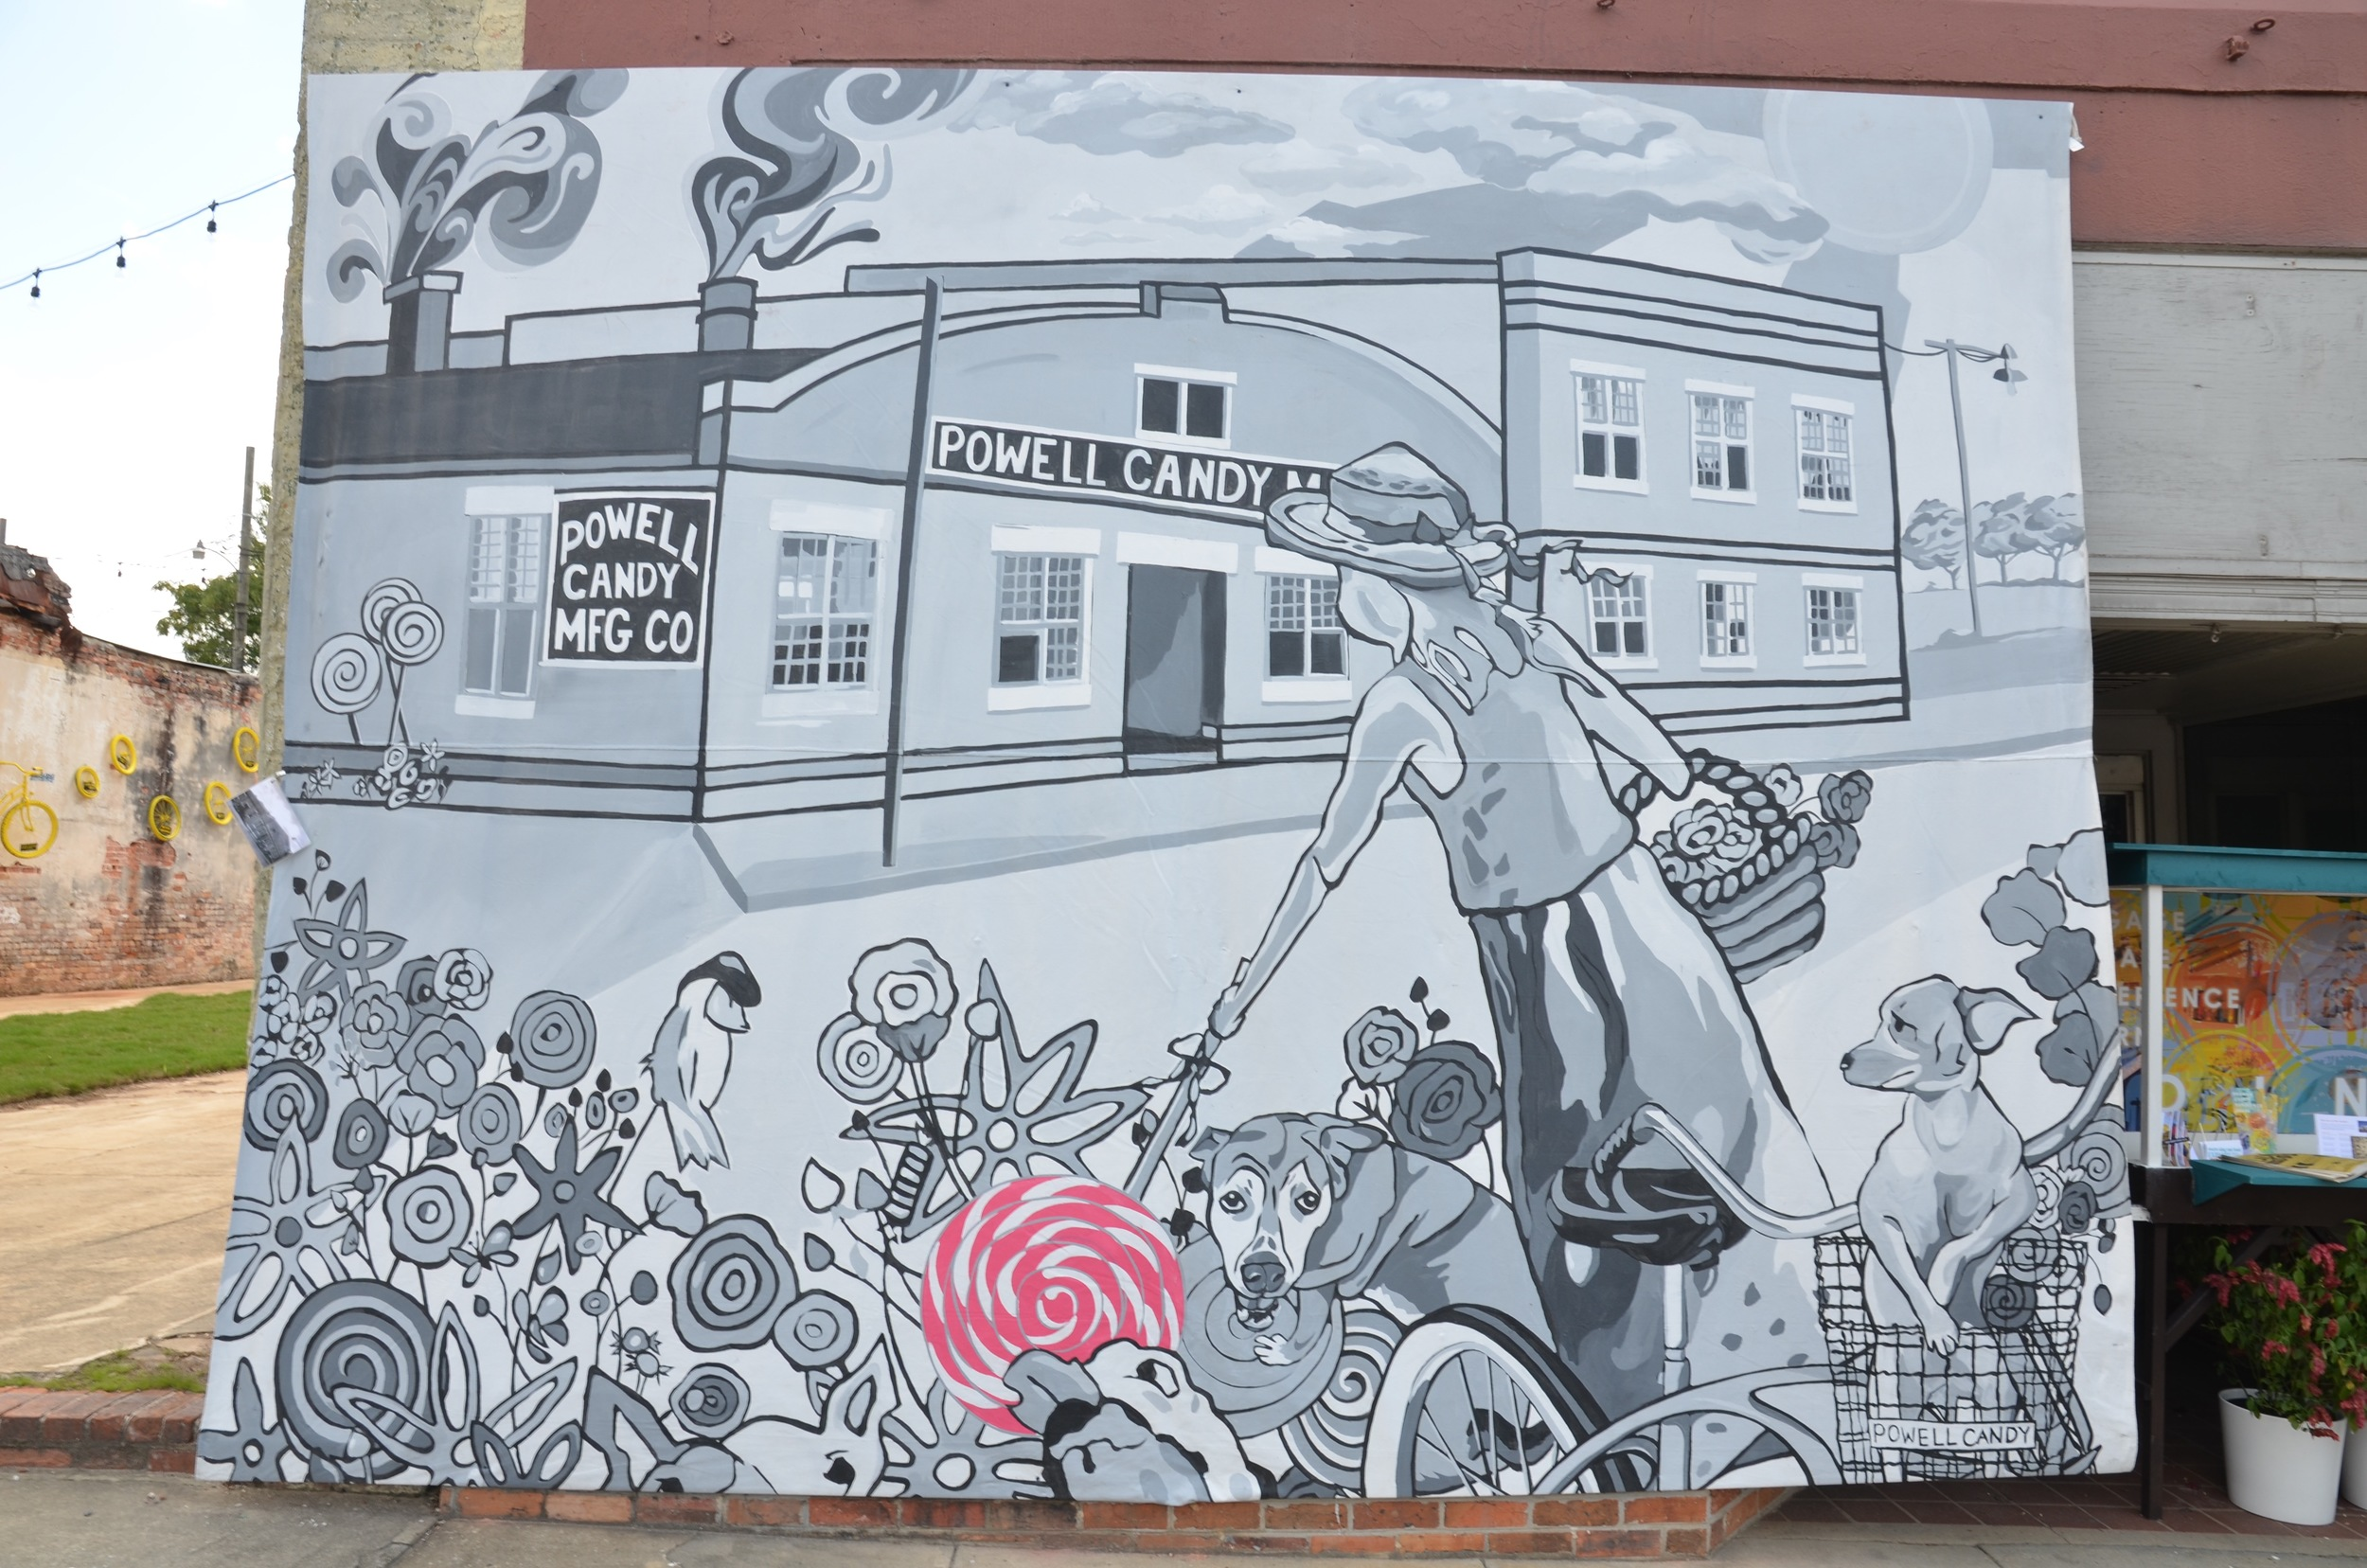 """Thomasville Center for the Arts FLAUNT 2014 - Historically inspired murals """"popped up"""" all over downtown Thomasville as part of the 2014 FLAUNT celebration of public art."""